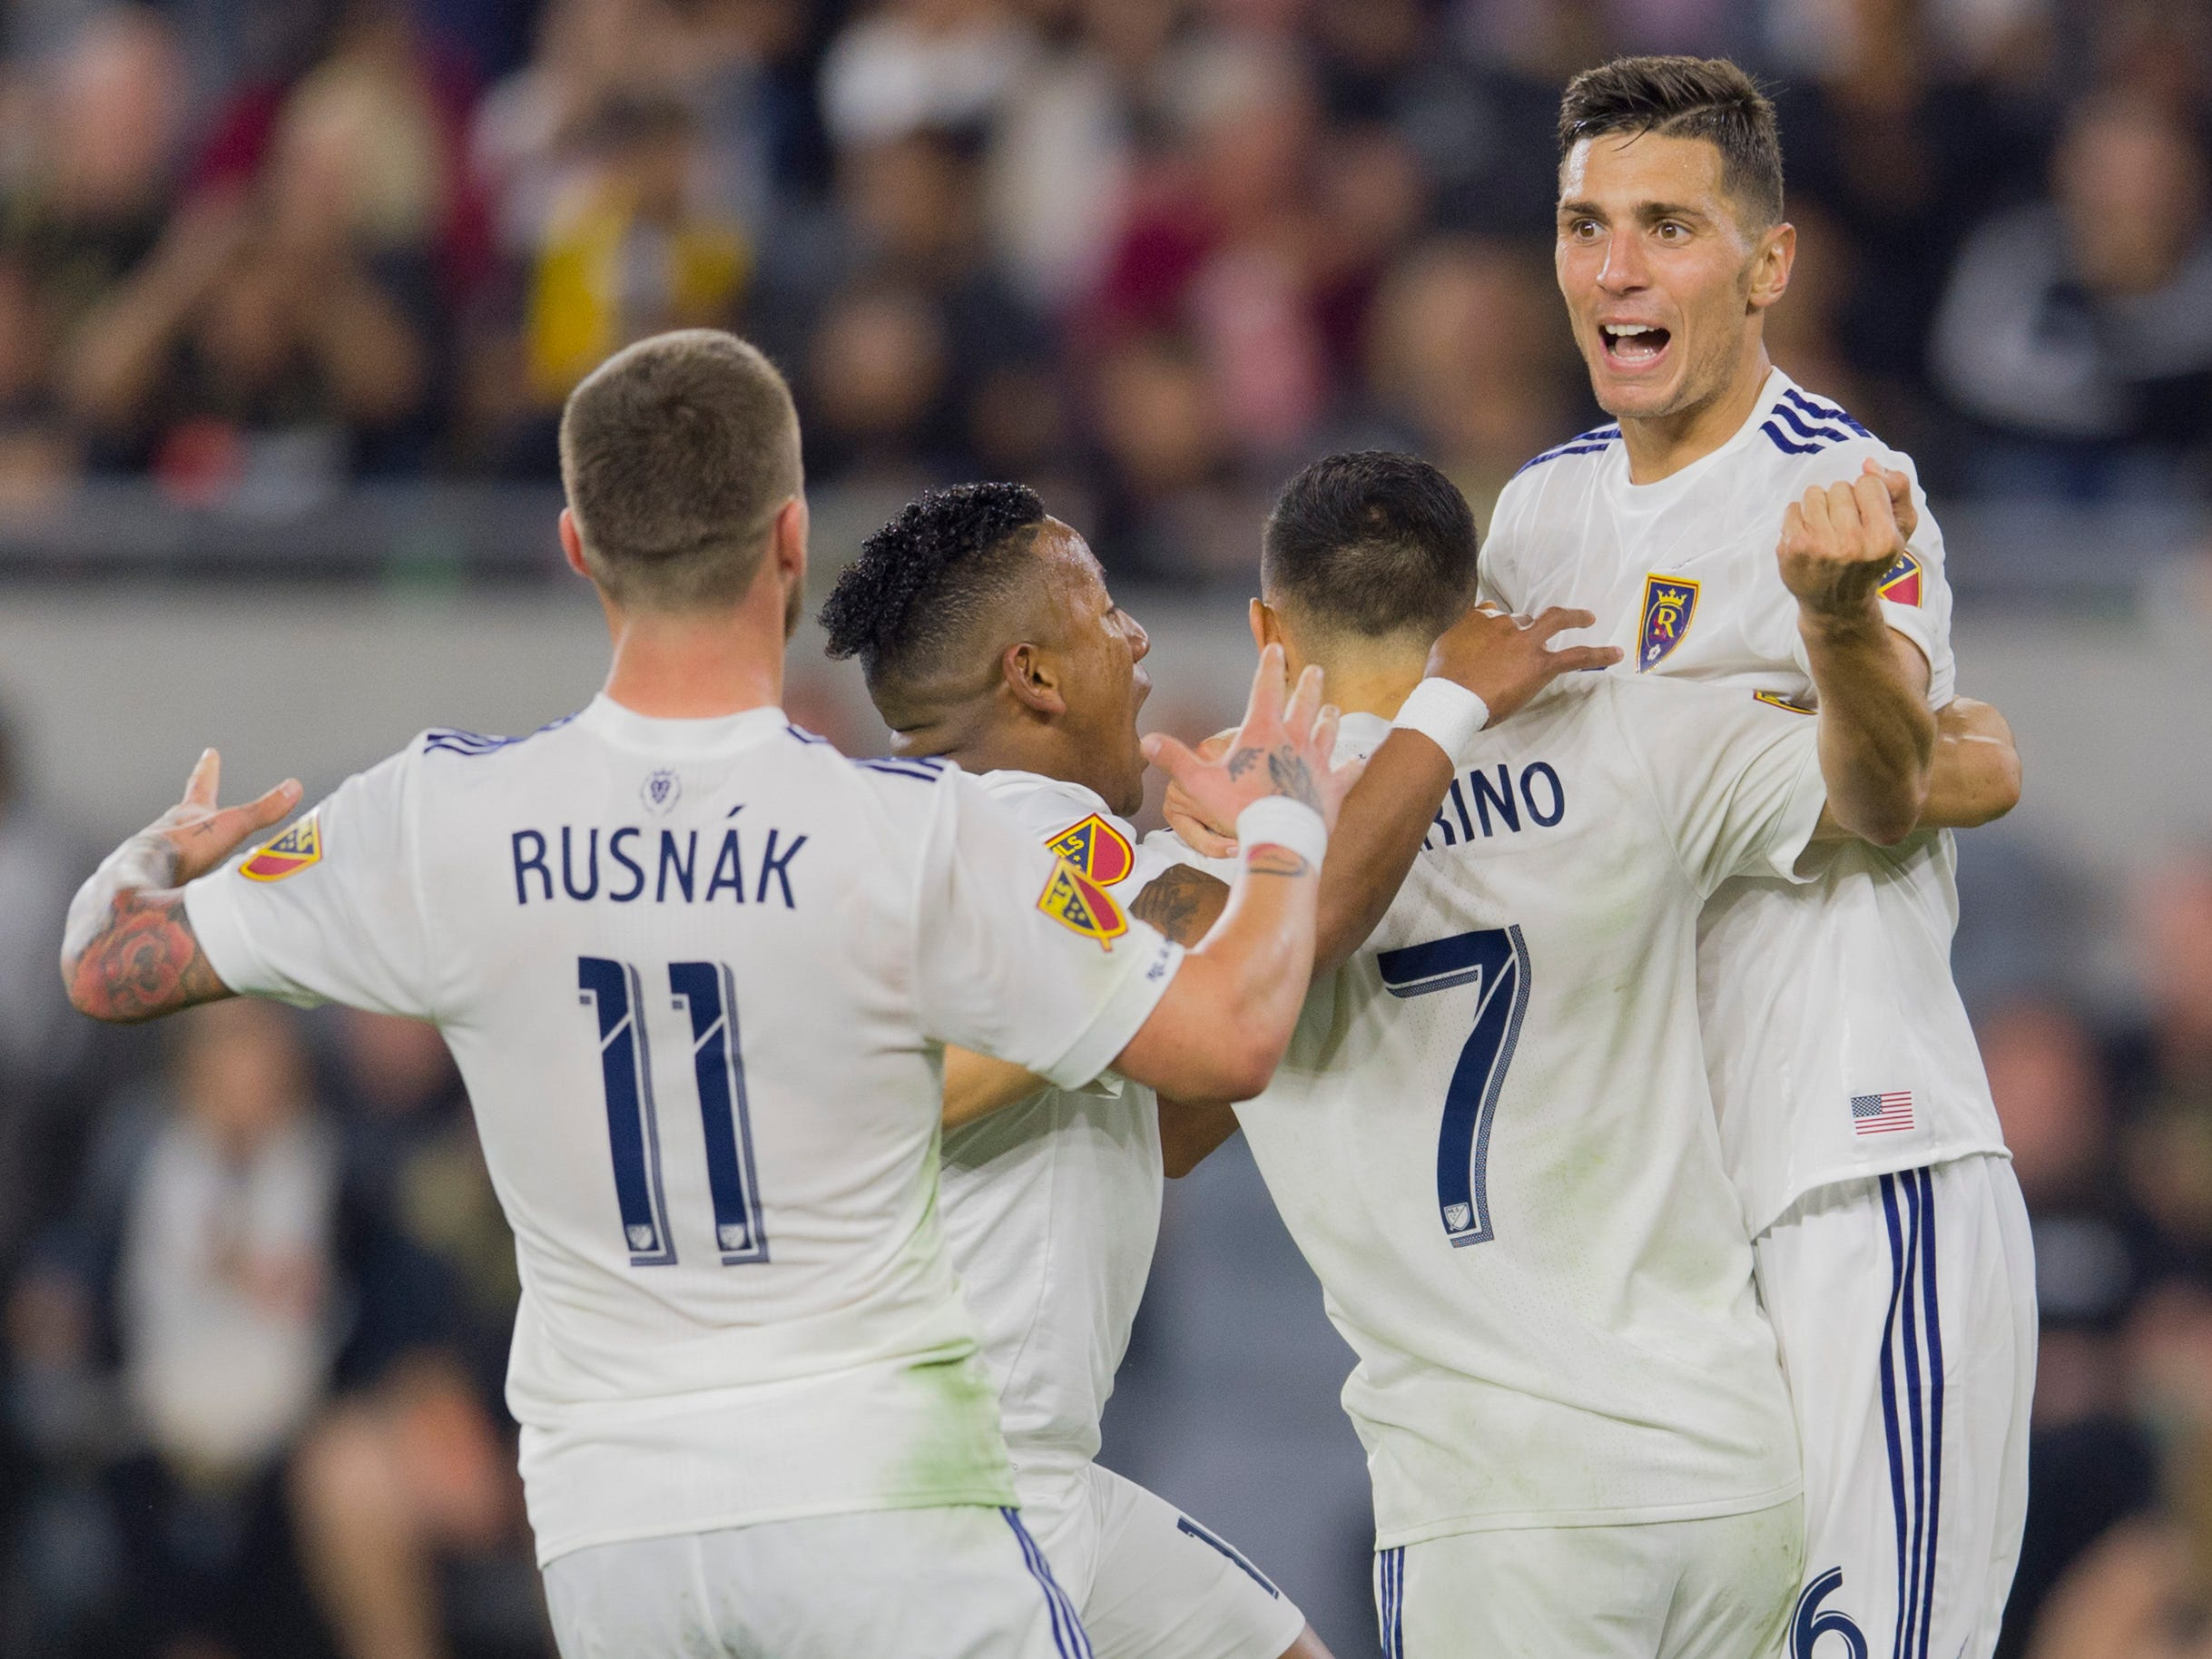 Real Salt Lake players celebrate a goal by  Jefferson Savarino (7) during the second half against the Los Angeles FC at Banc of California Stadium. Real Salt Lake won the game, 3-2.